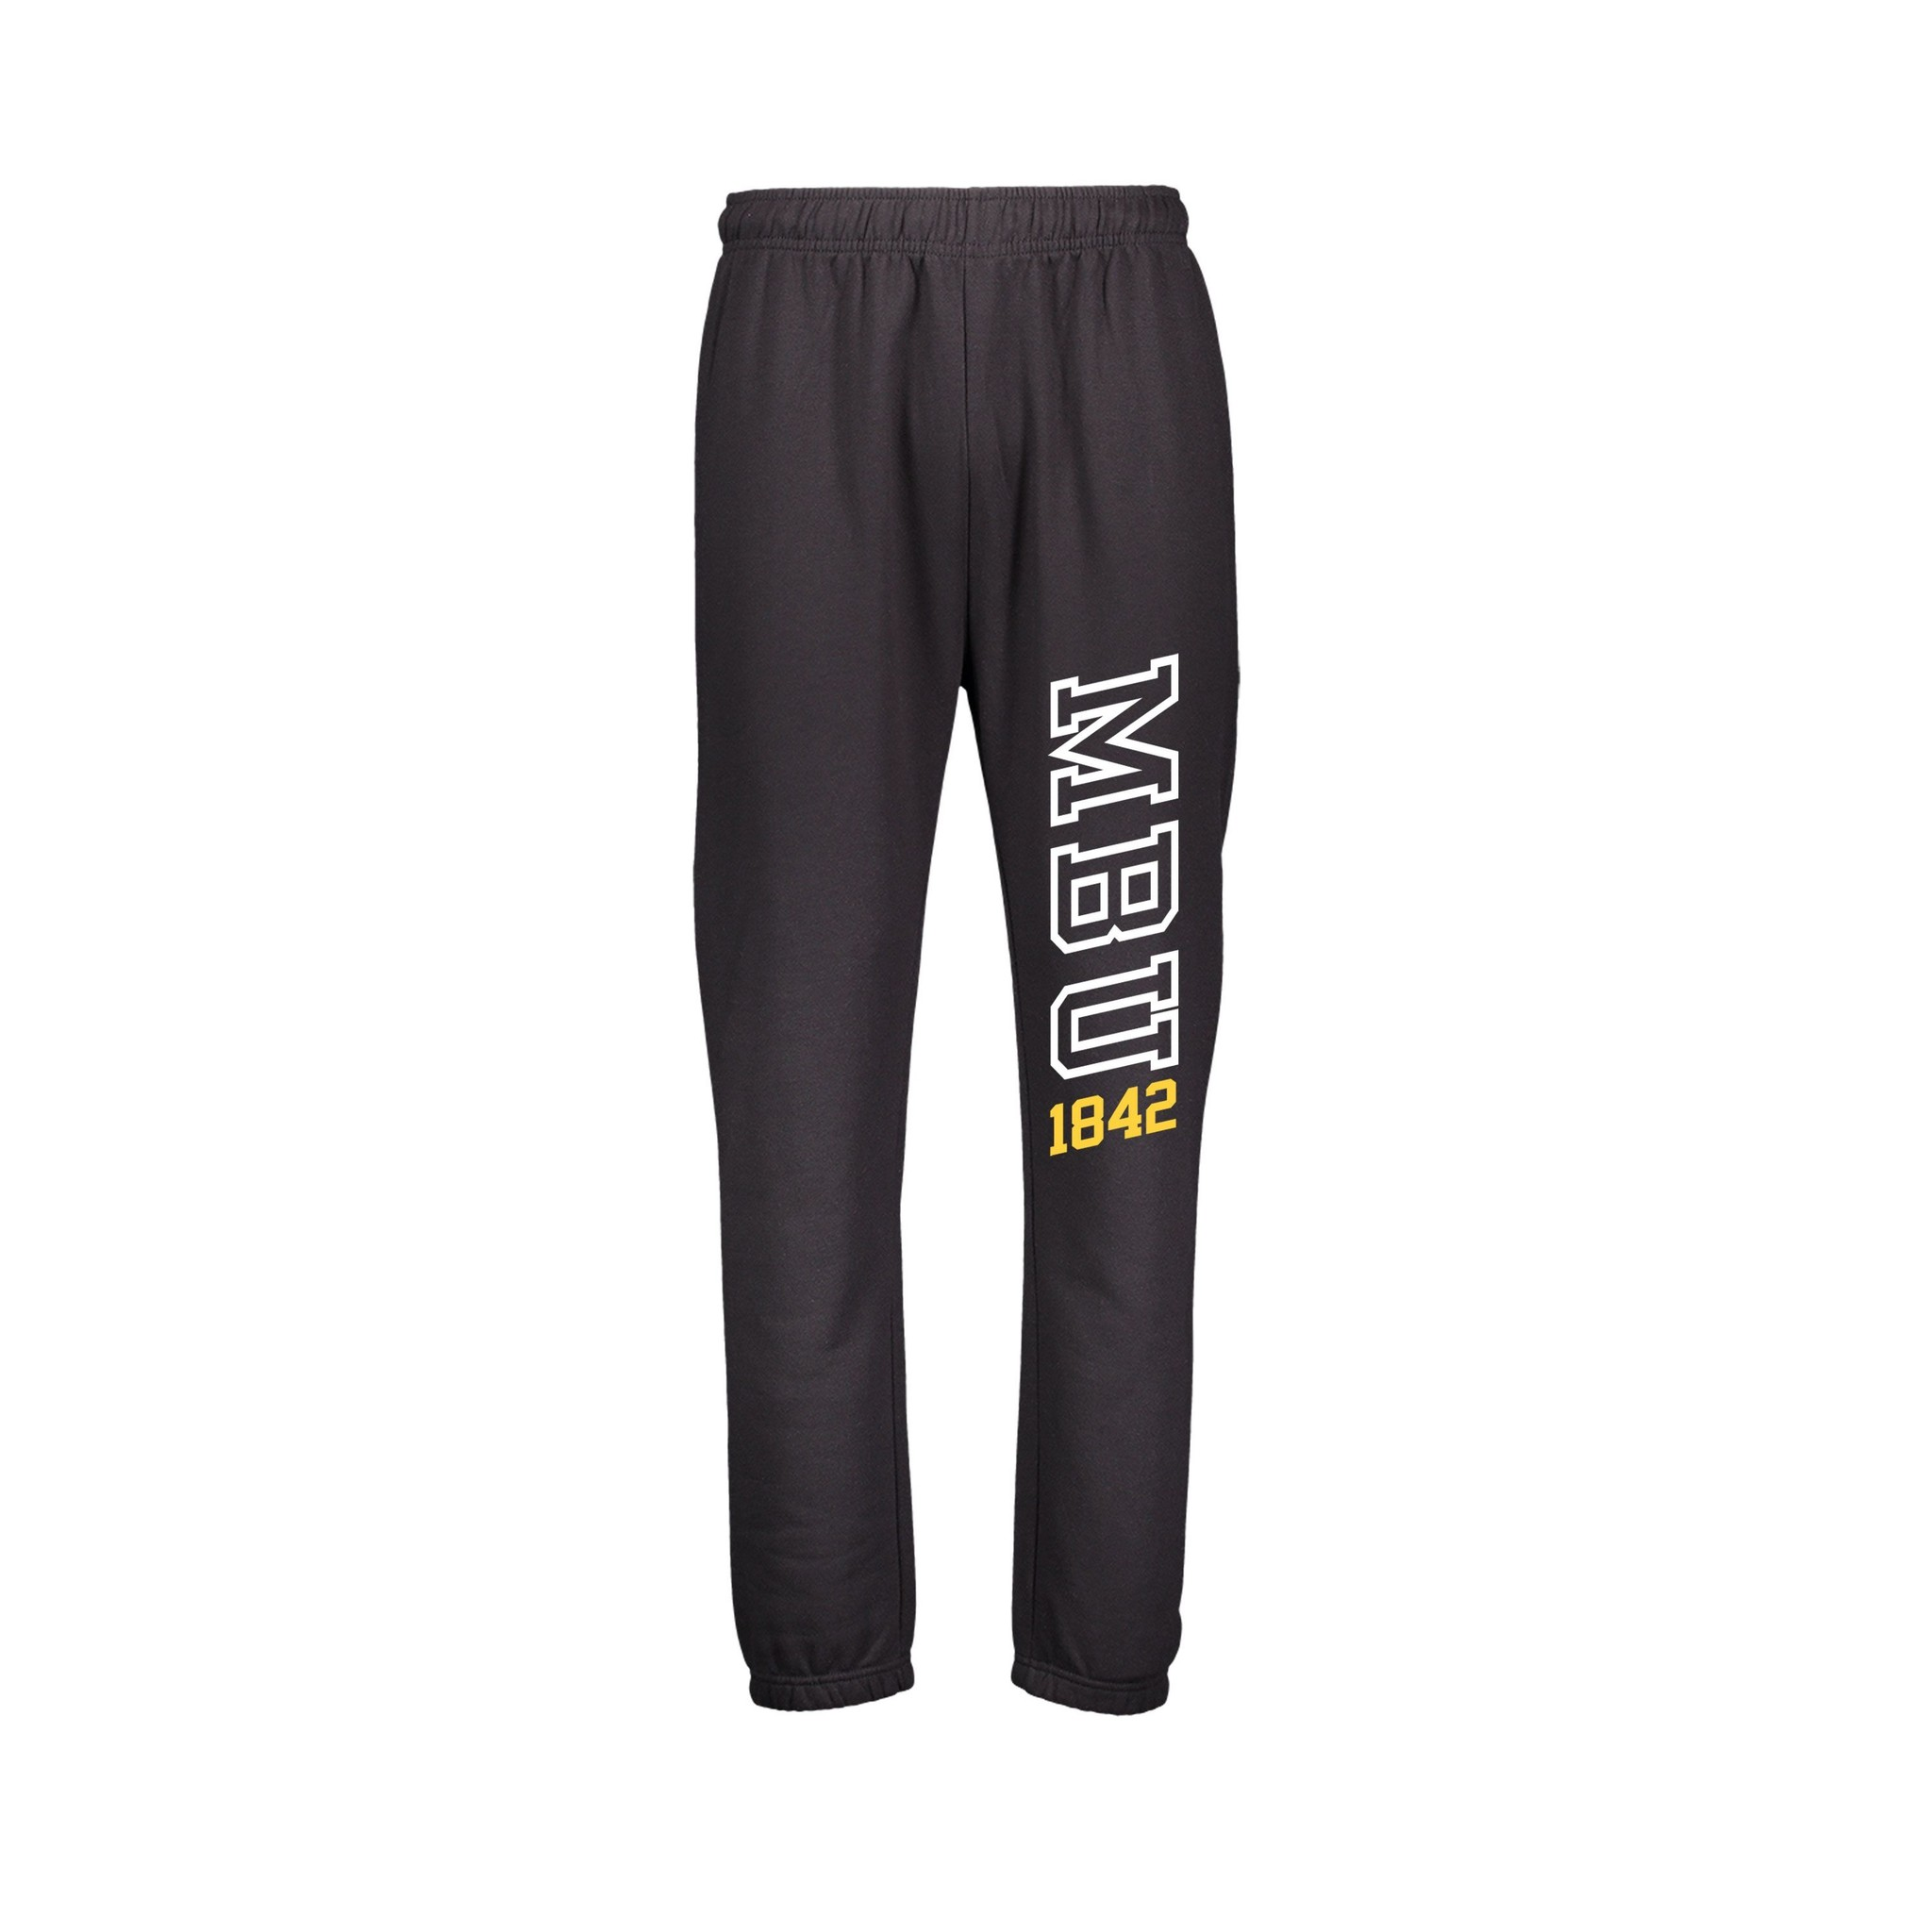 MV Comfort Fleece Sweatpants